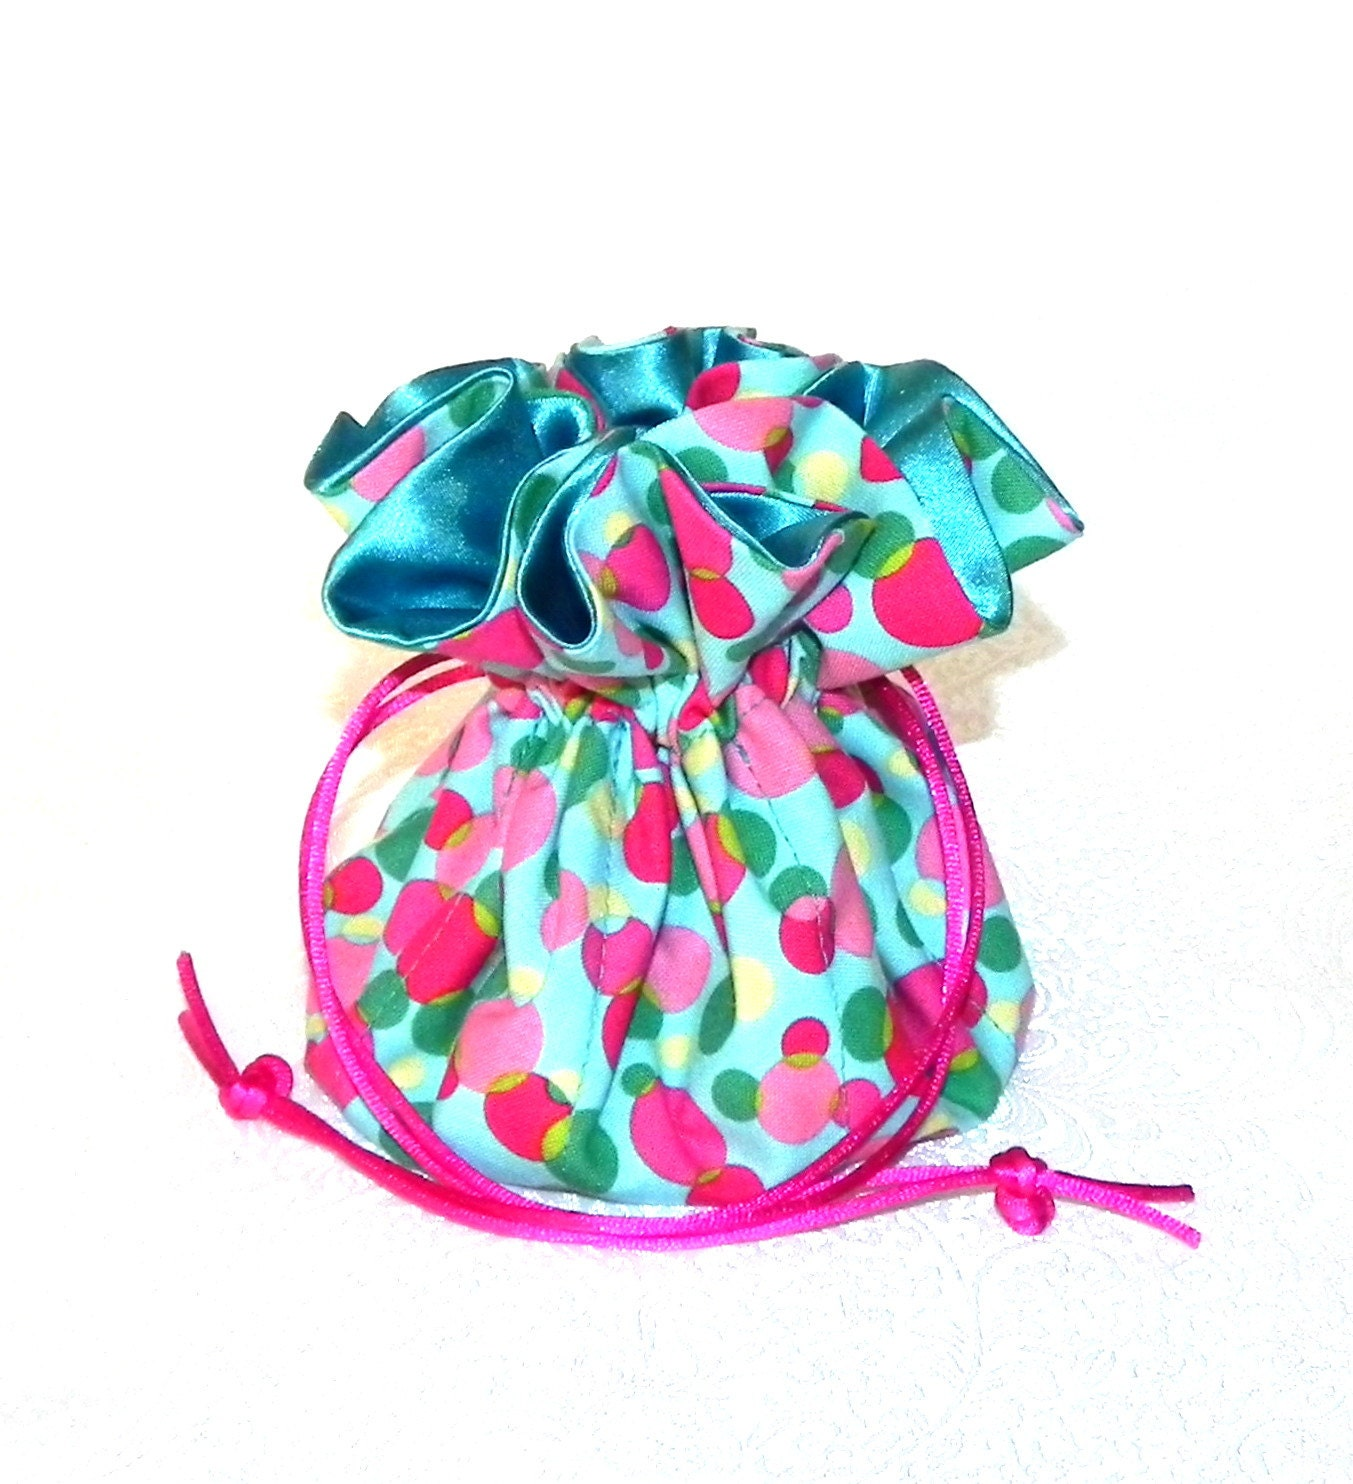 Drawstring jewelry bag pouch jewelry organizer by for Drawstring jewelry bag pattern